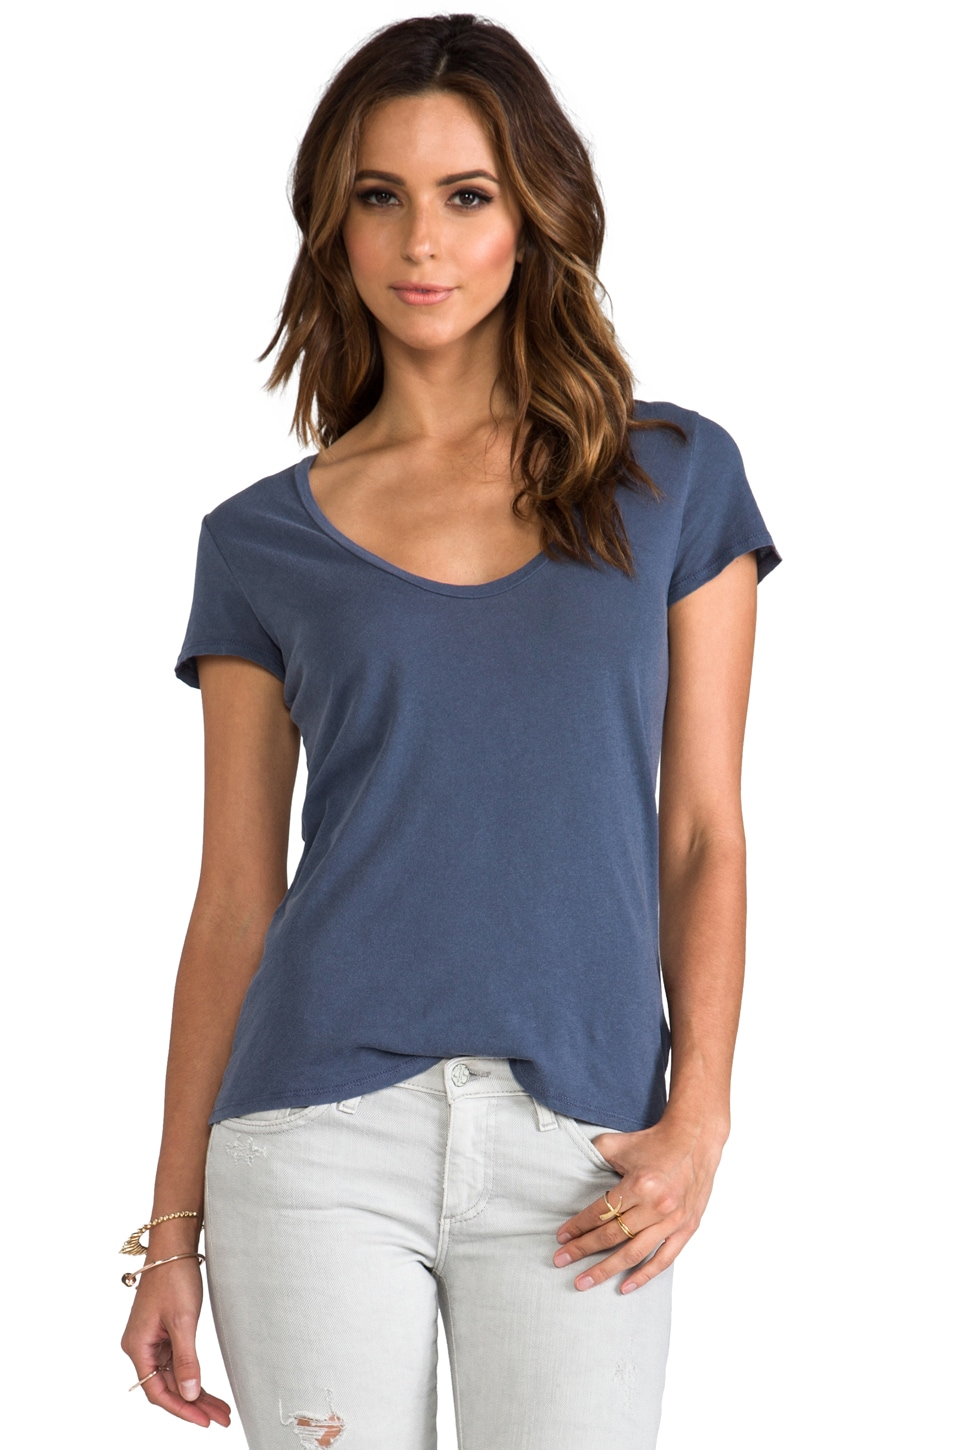 James Perse Relaxed Casual Scoop Neck in Marine